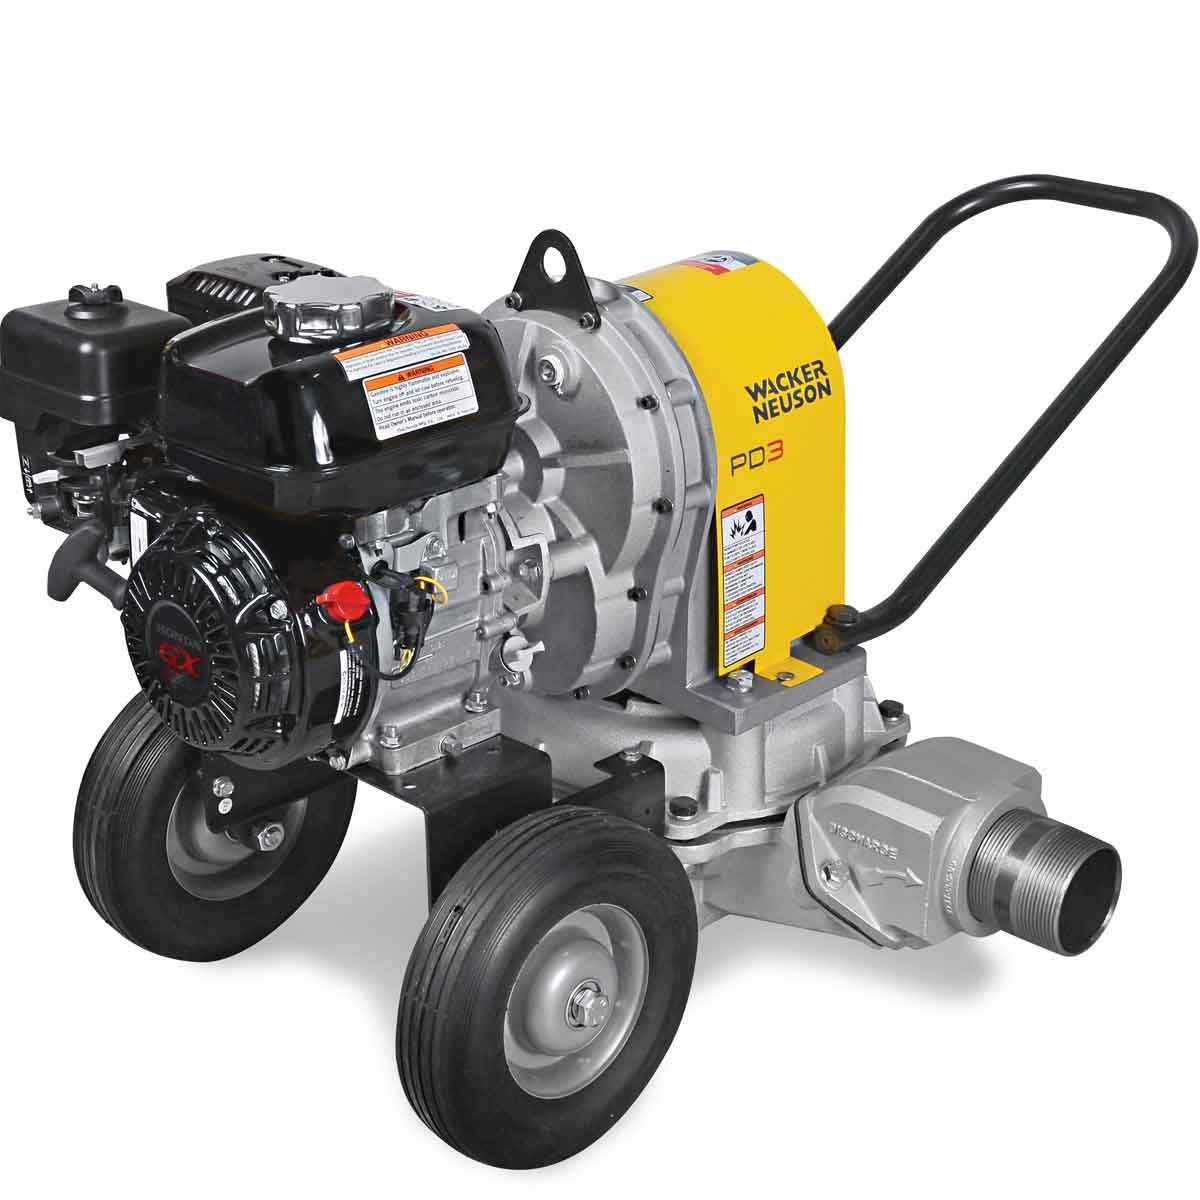 Wacker PDT 3A Pump with Honda Engine